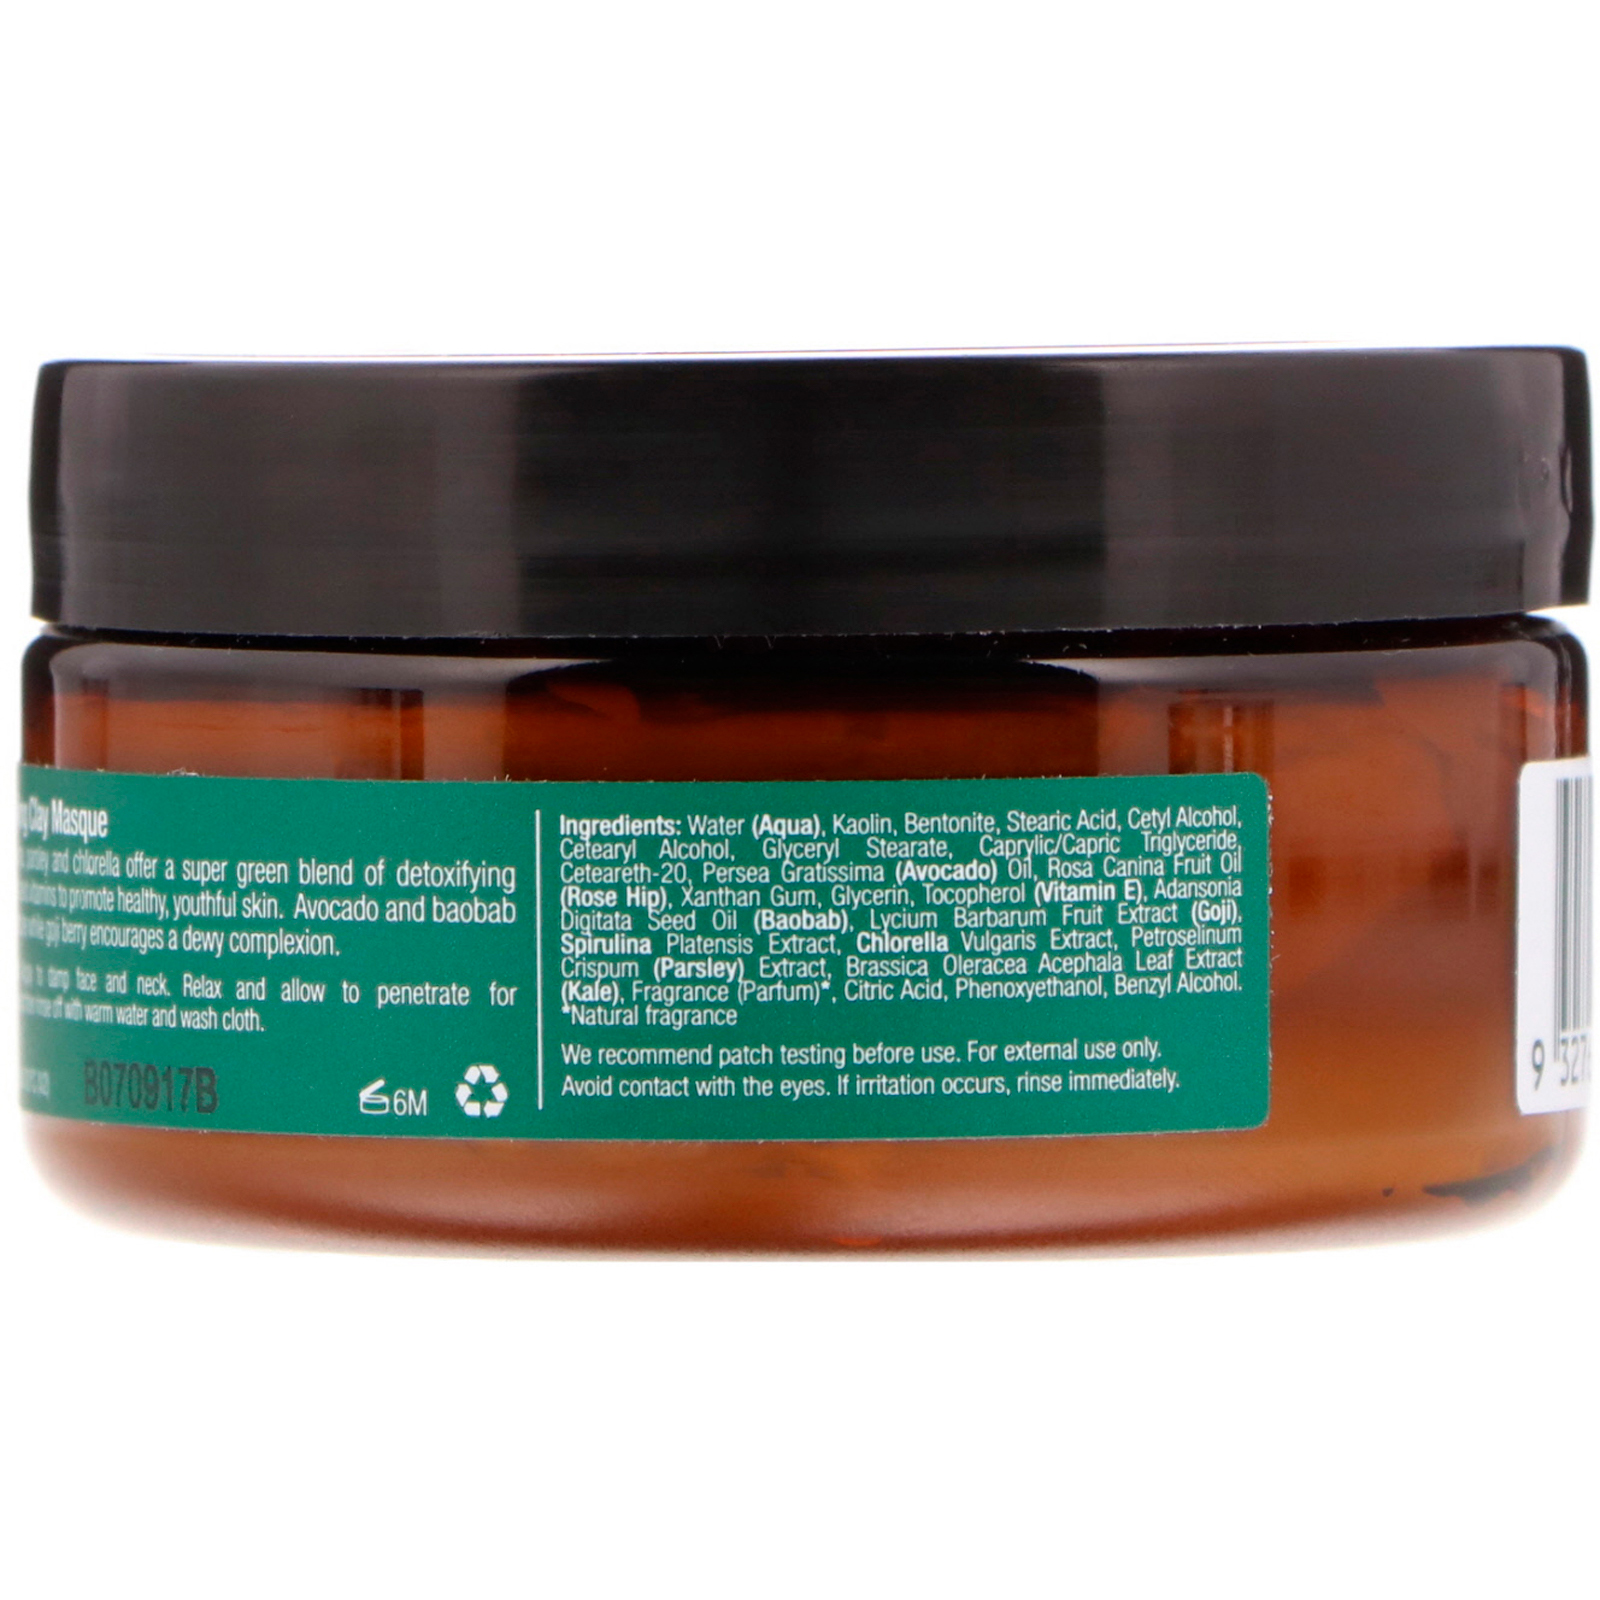 Sukin, Super Greens, Detoxifying Clay Masque, 3.38 fl oz (100 ml). By Sukin